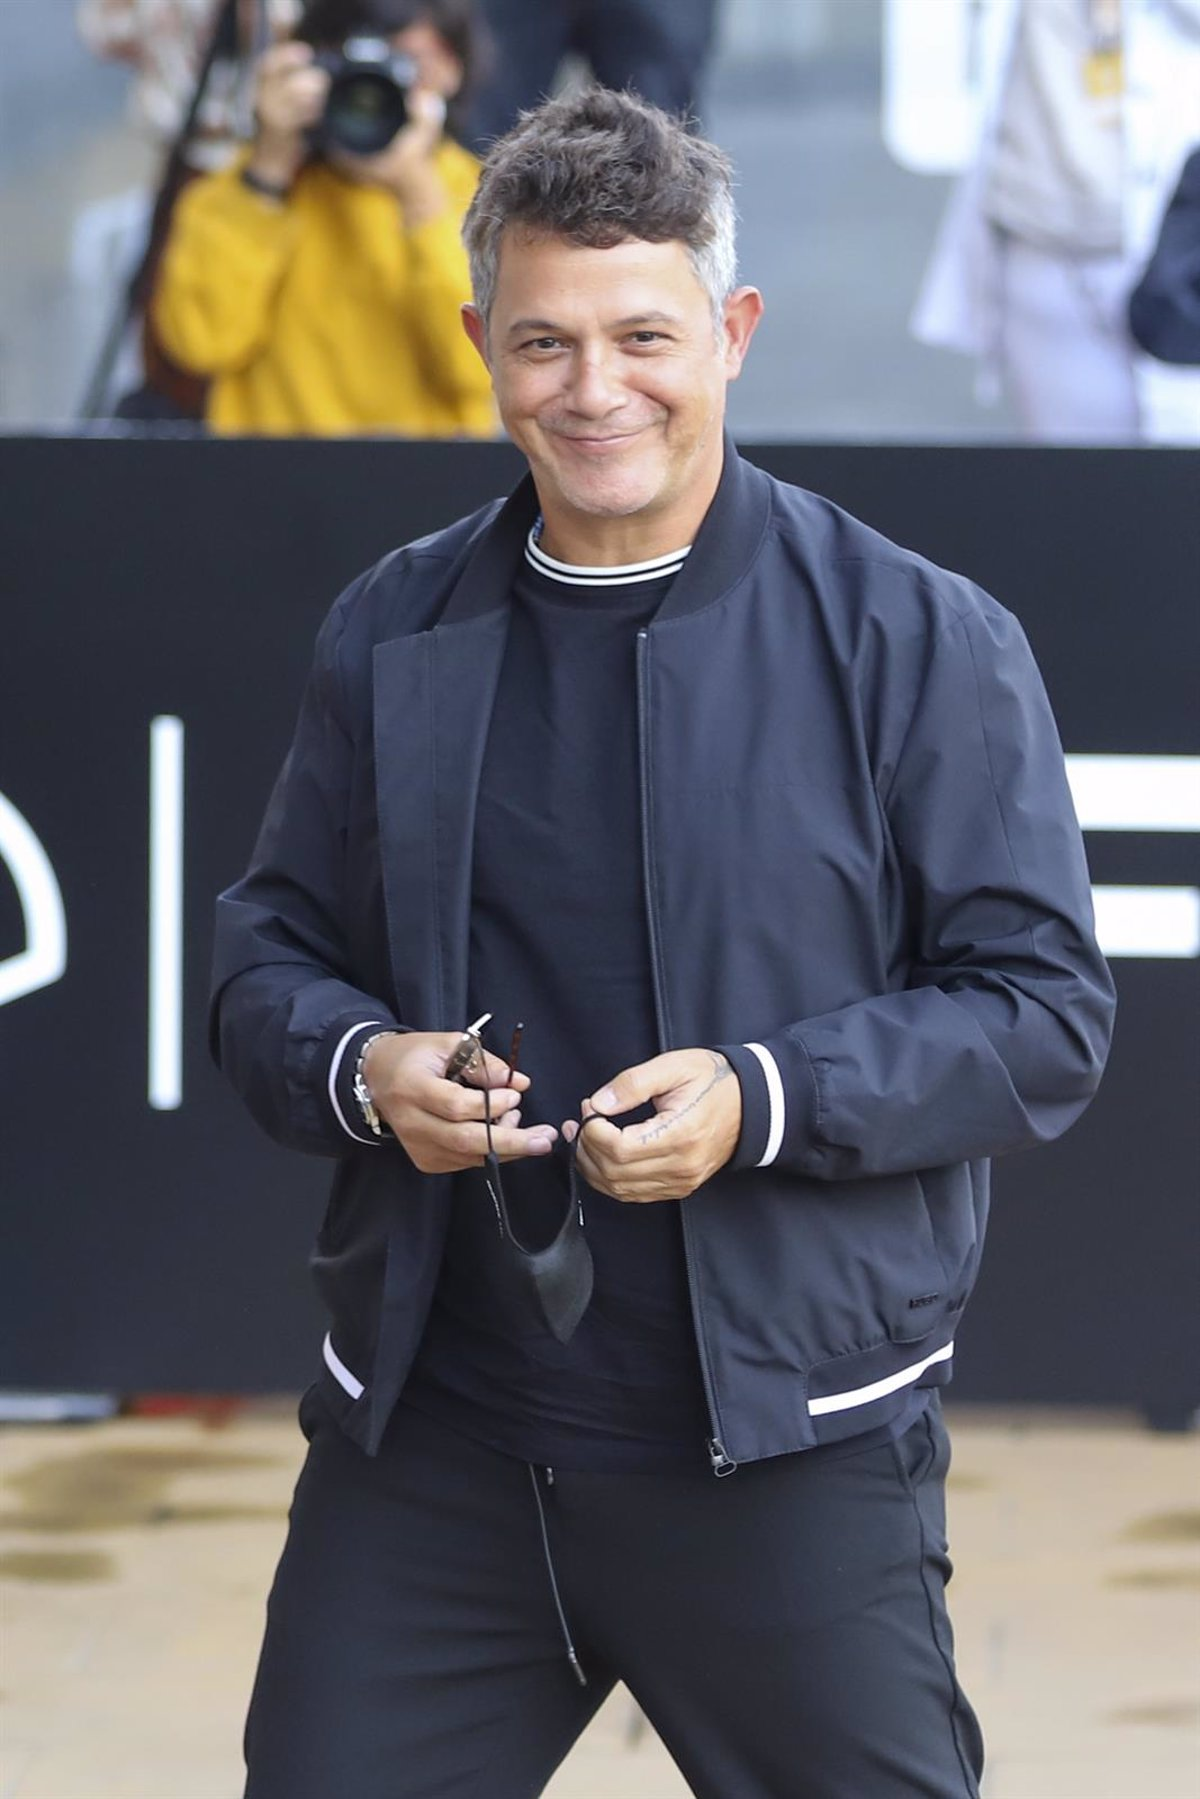 Alejandro Sanz will have a star on the Hollywood Walk of Fame